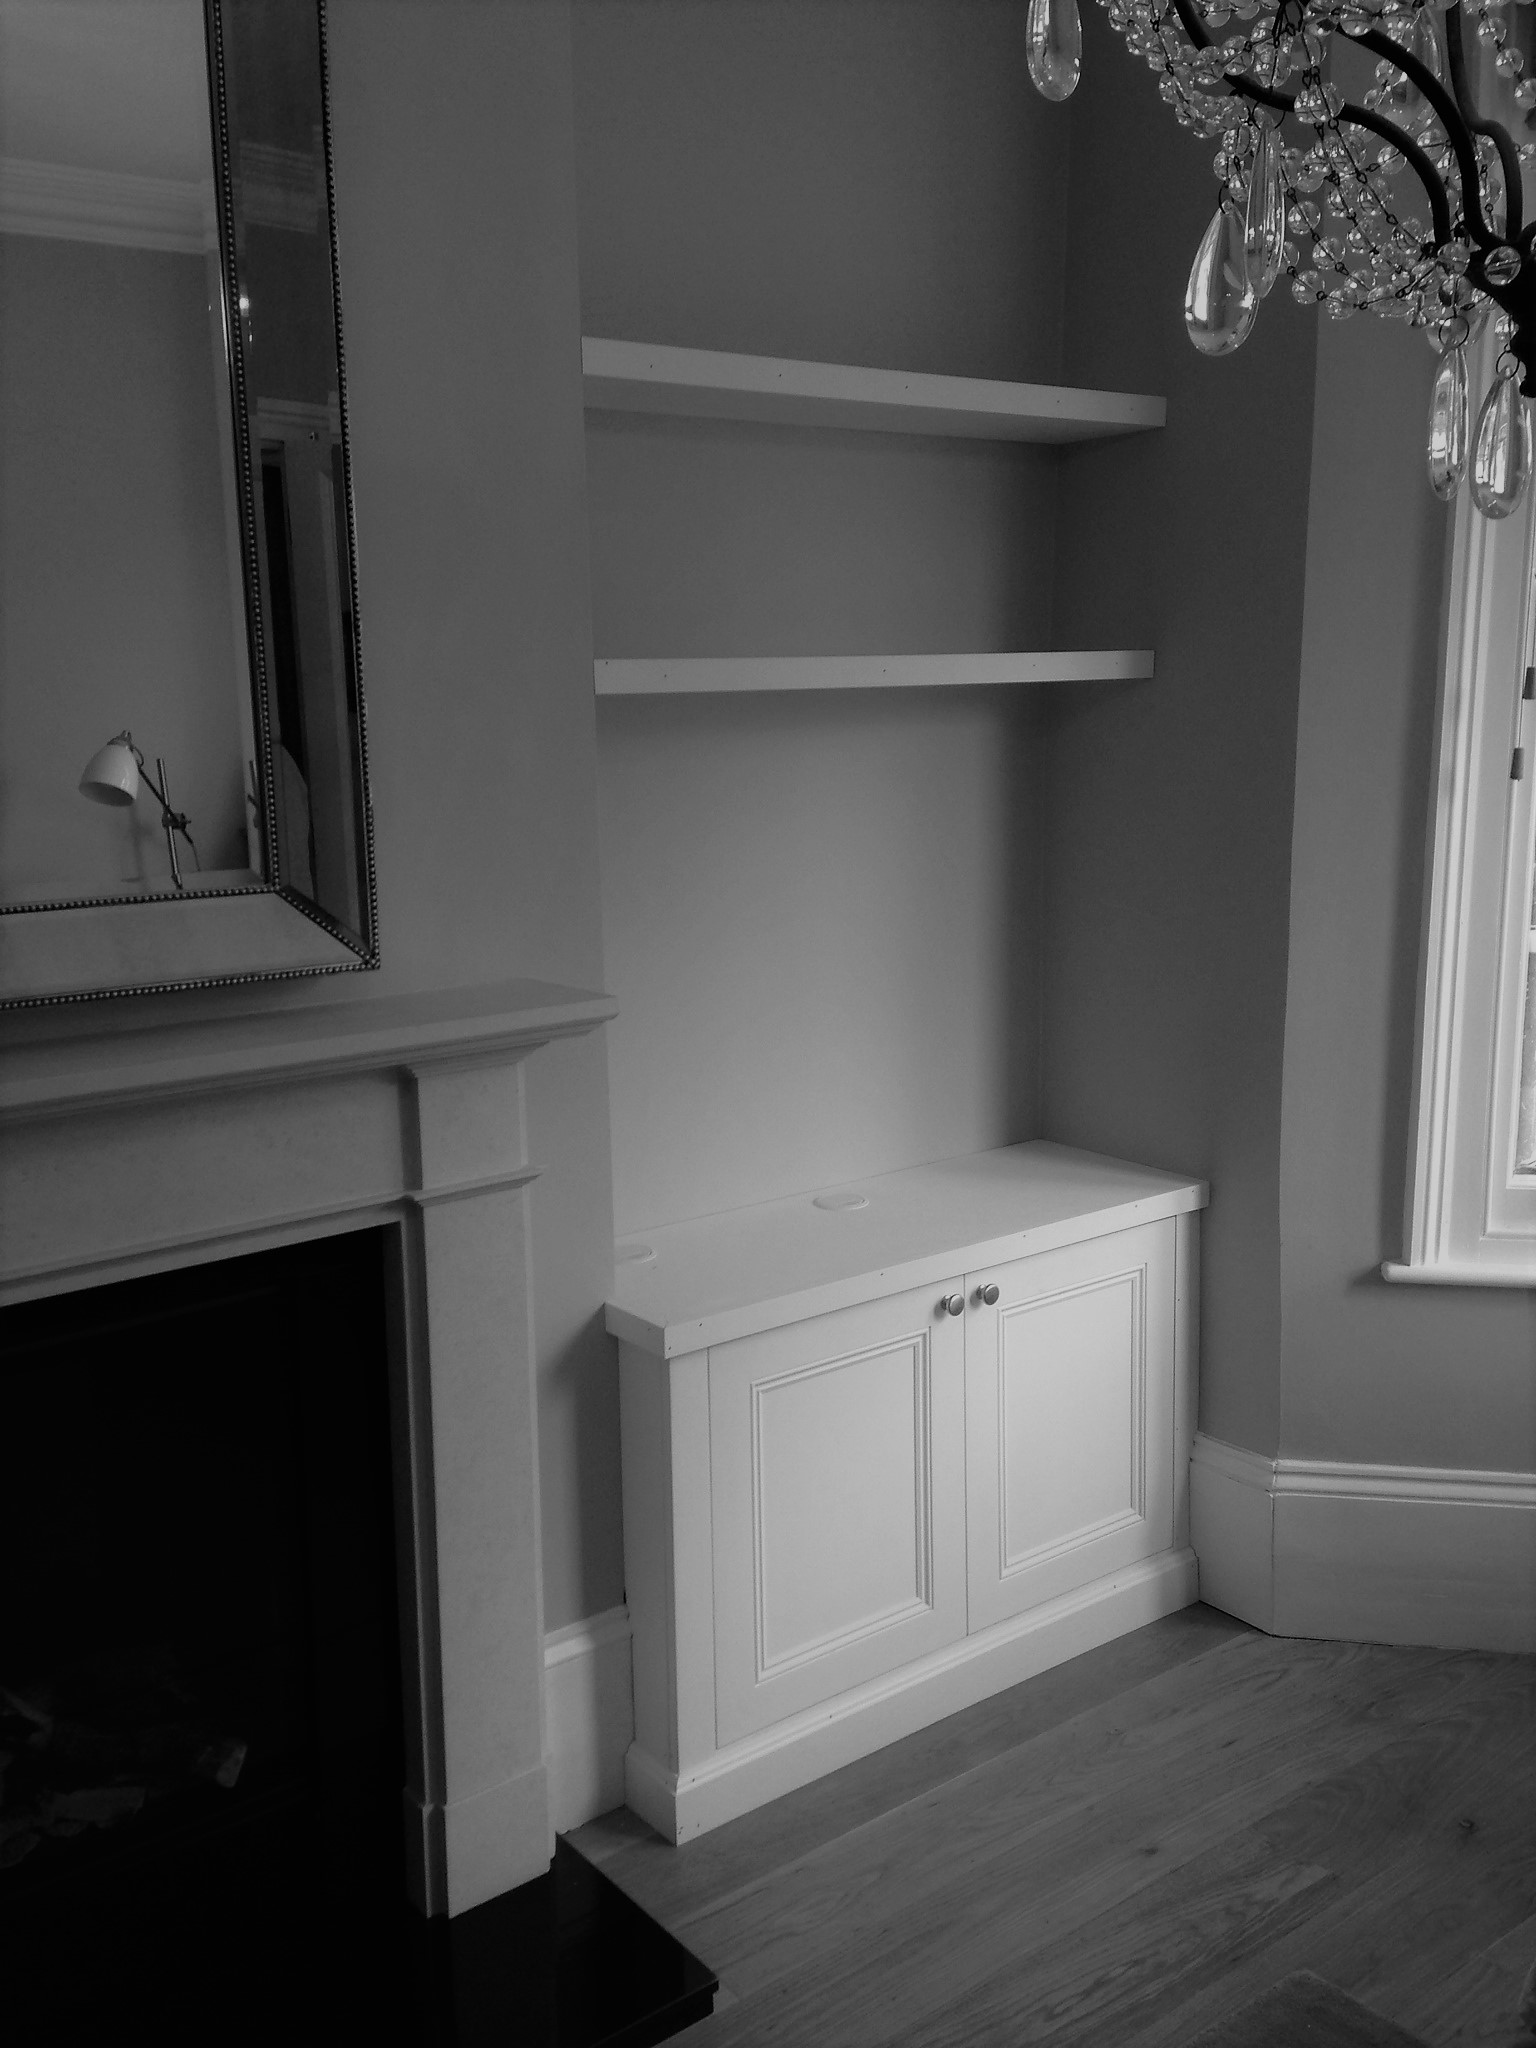 A classic alcove unit with a pair of fitted floating shelves above.